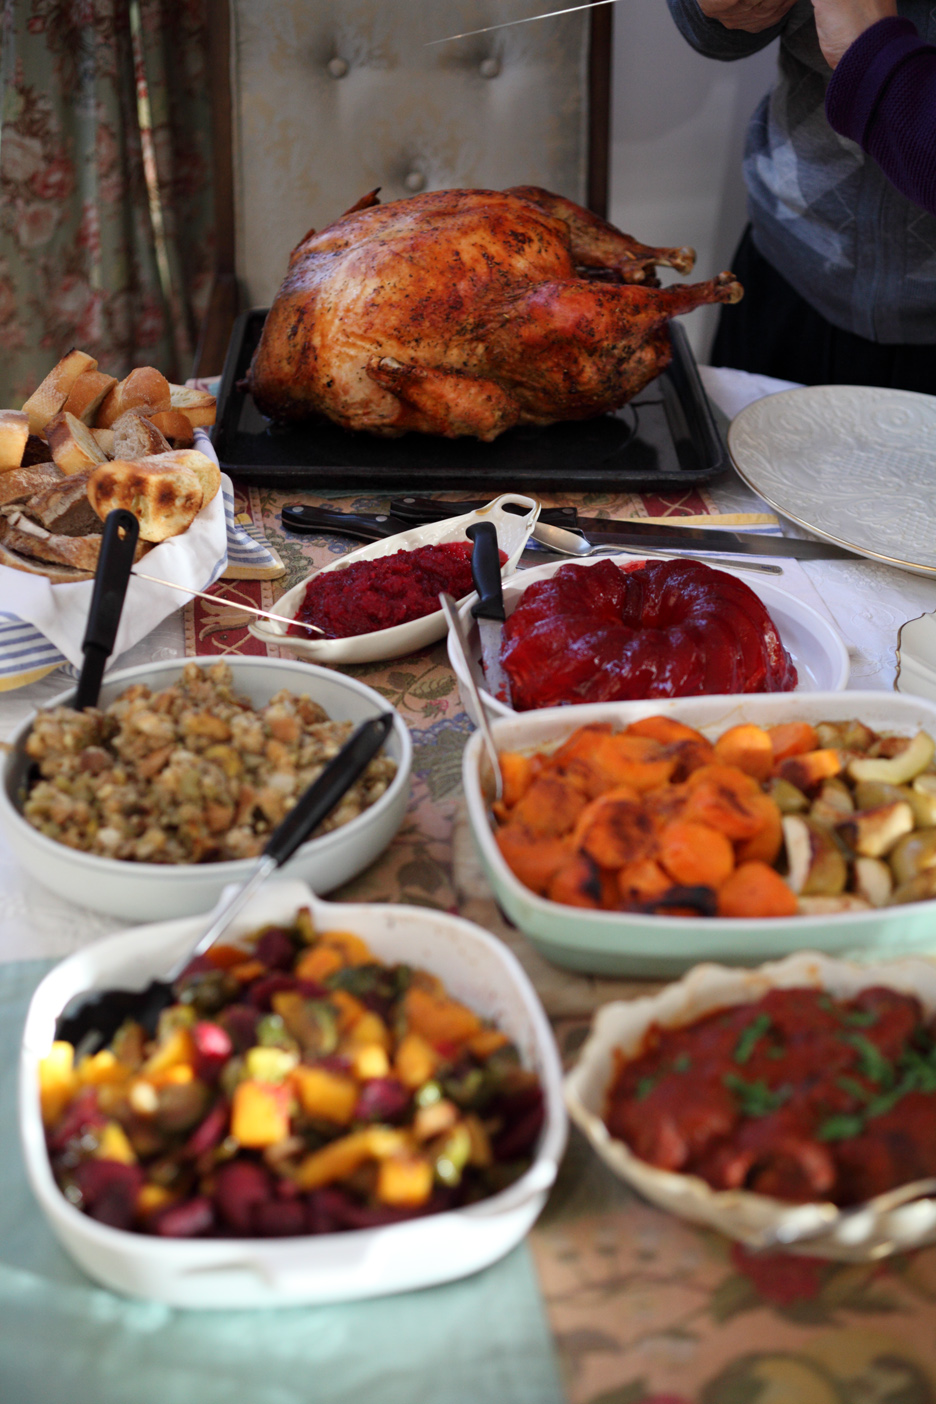 A typical Thanksgiving feast. Image courtesy of ccho.